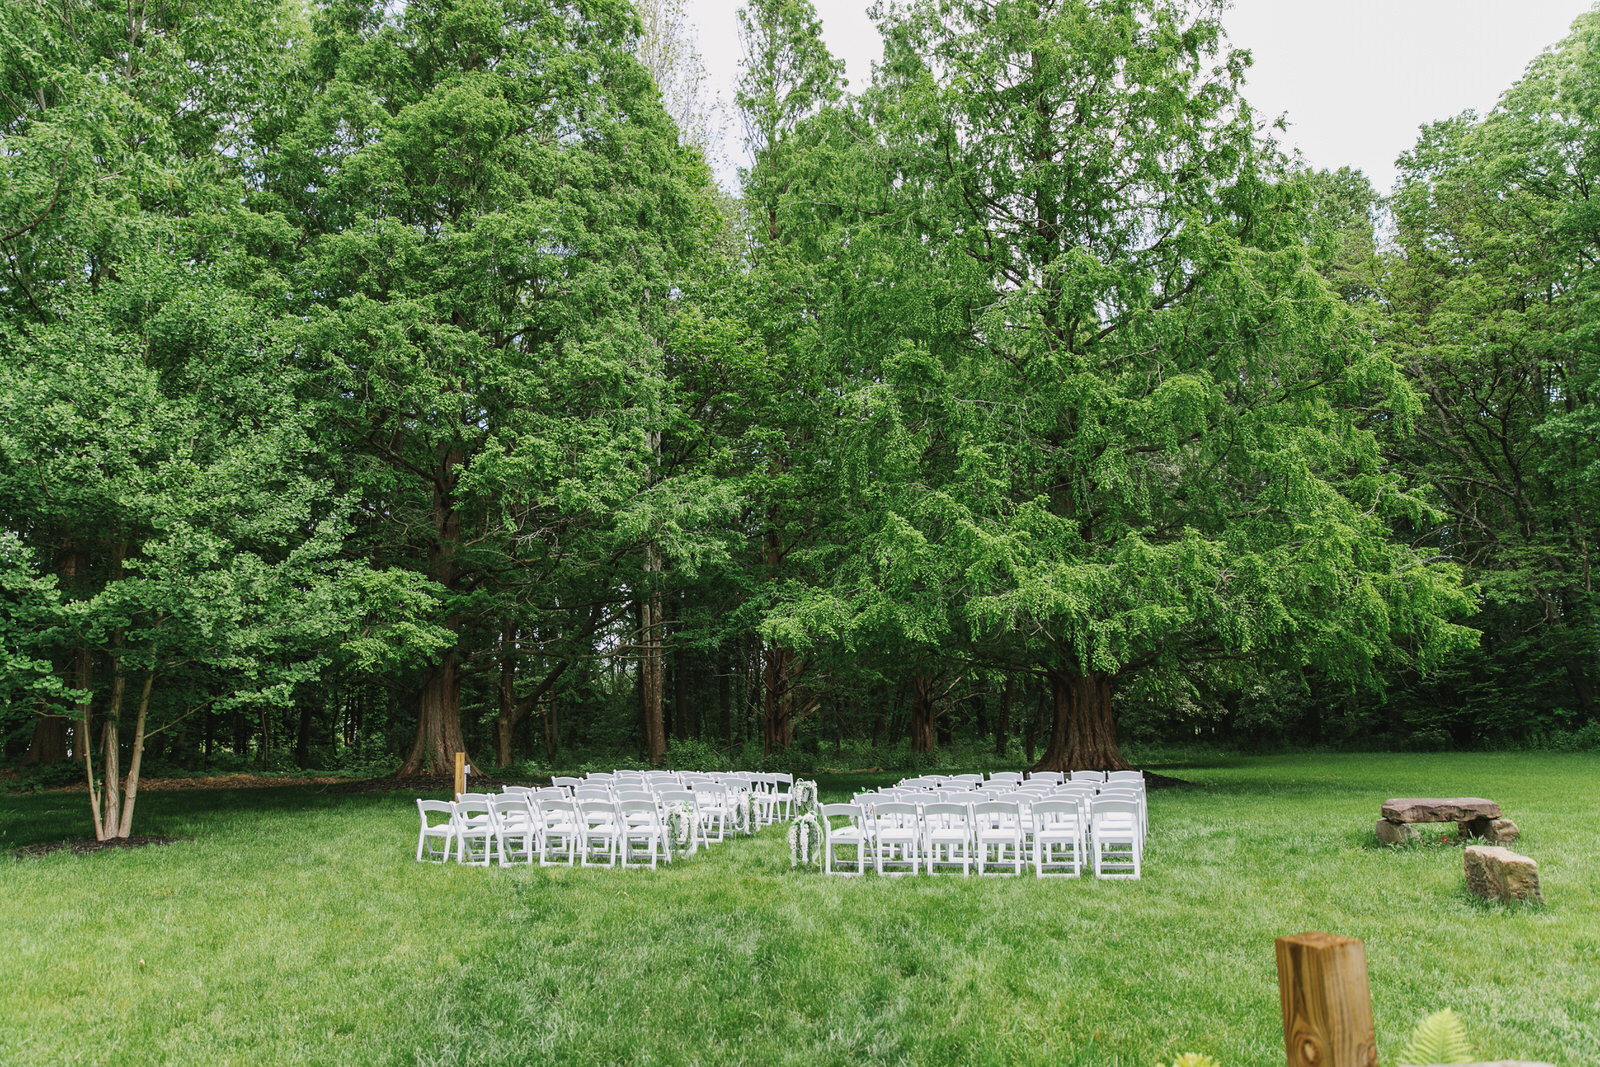 Wooded Ceremony Site - Get married among these lush giant trees!